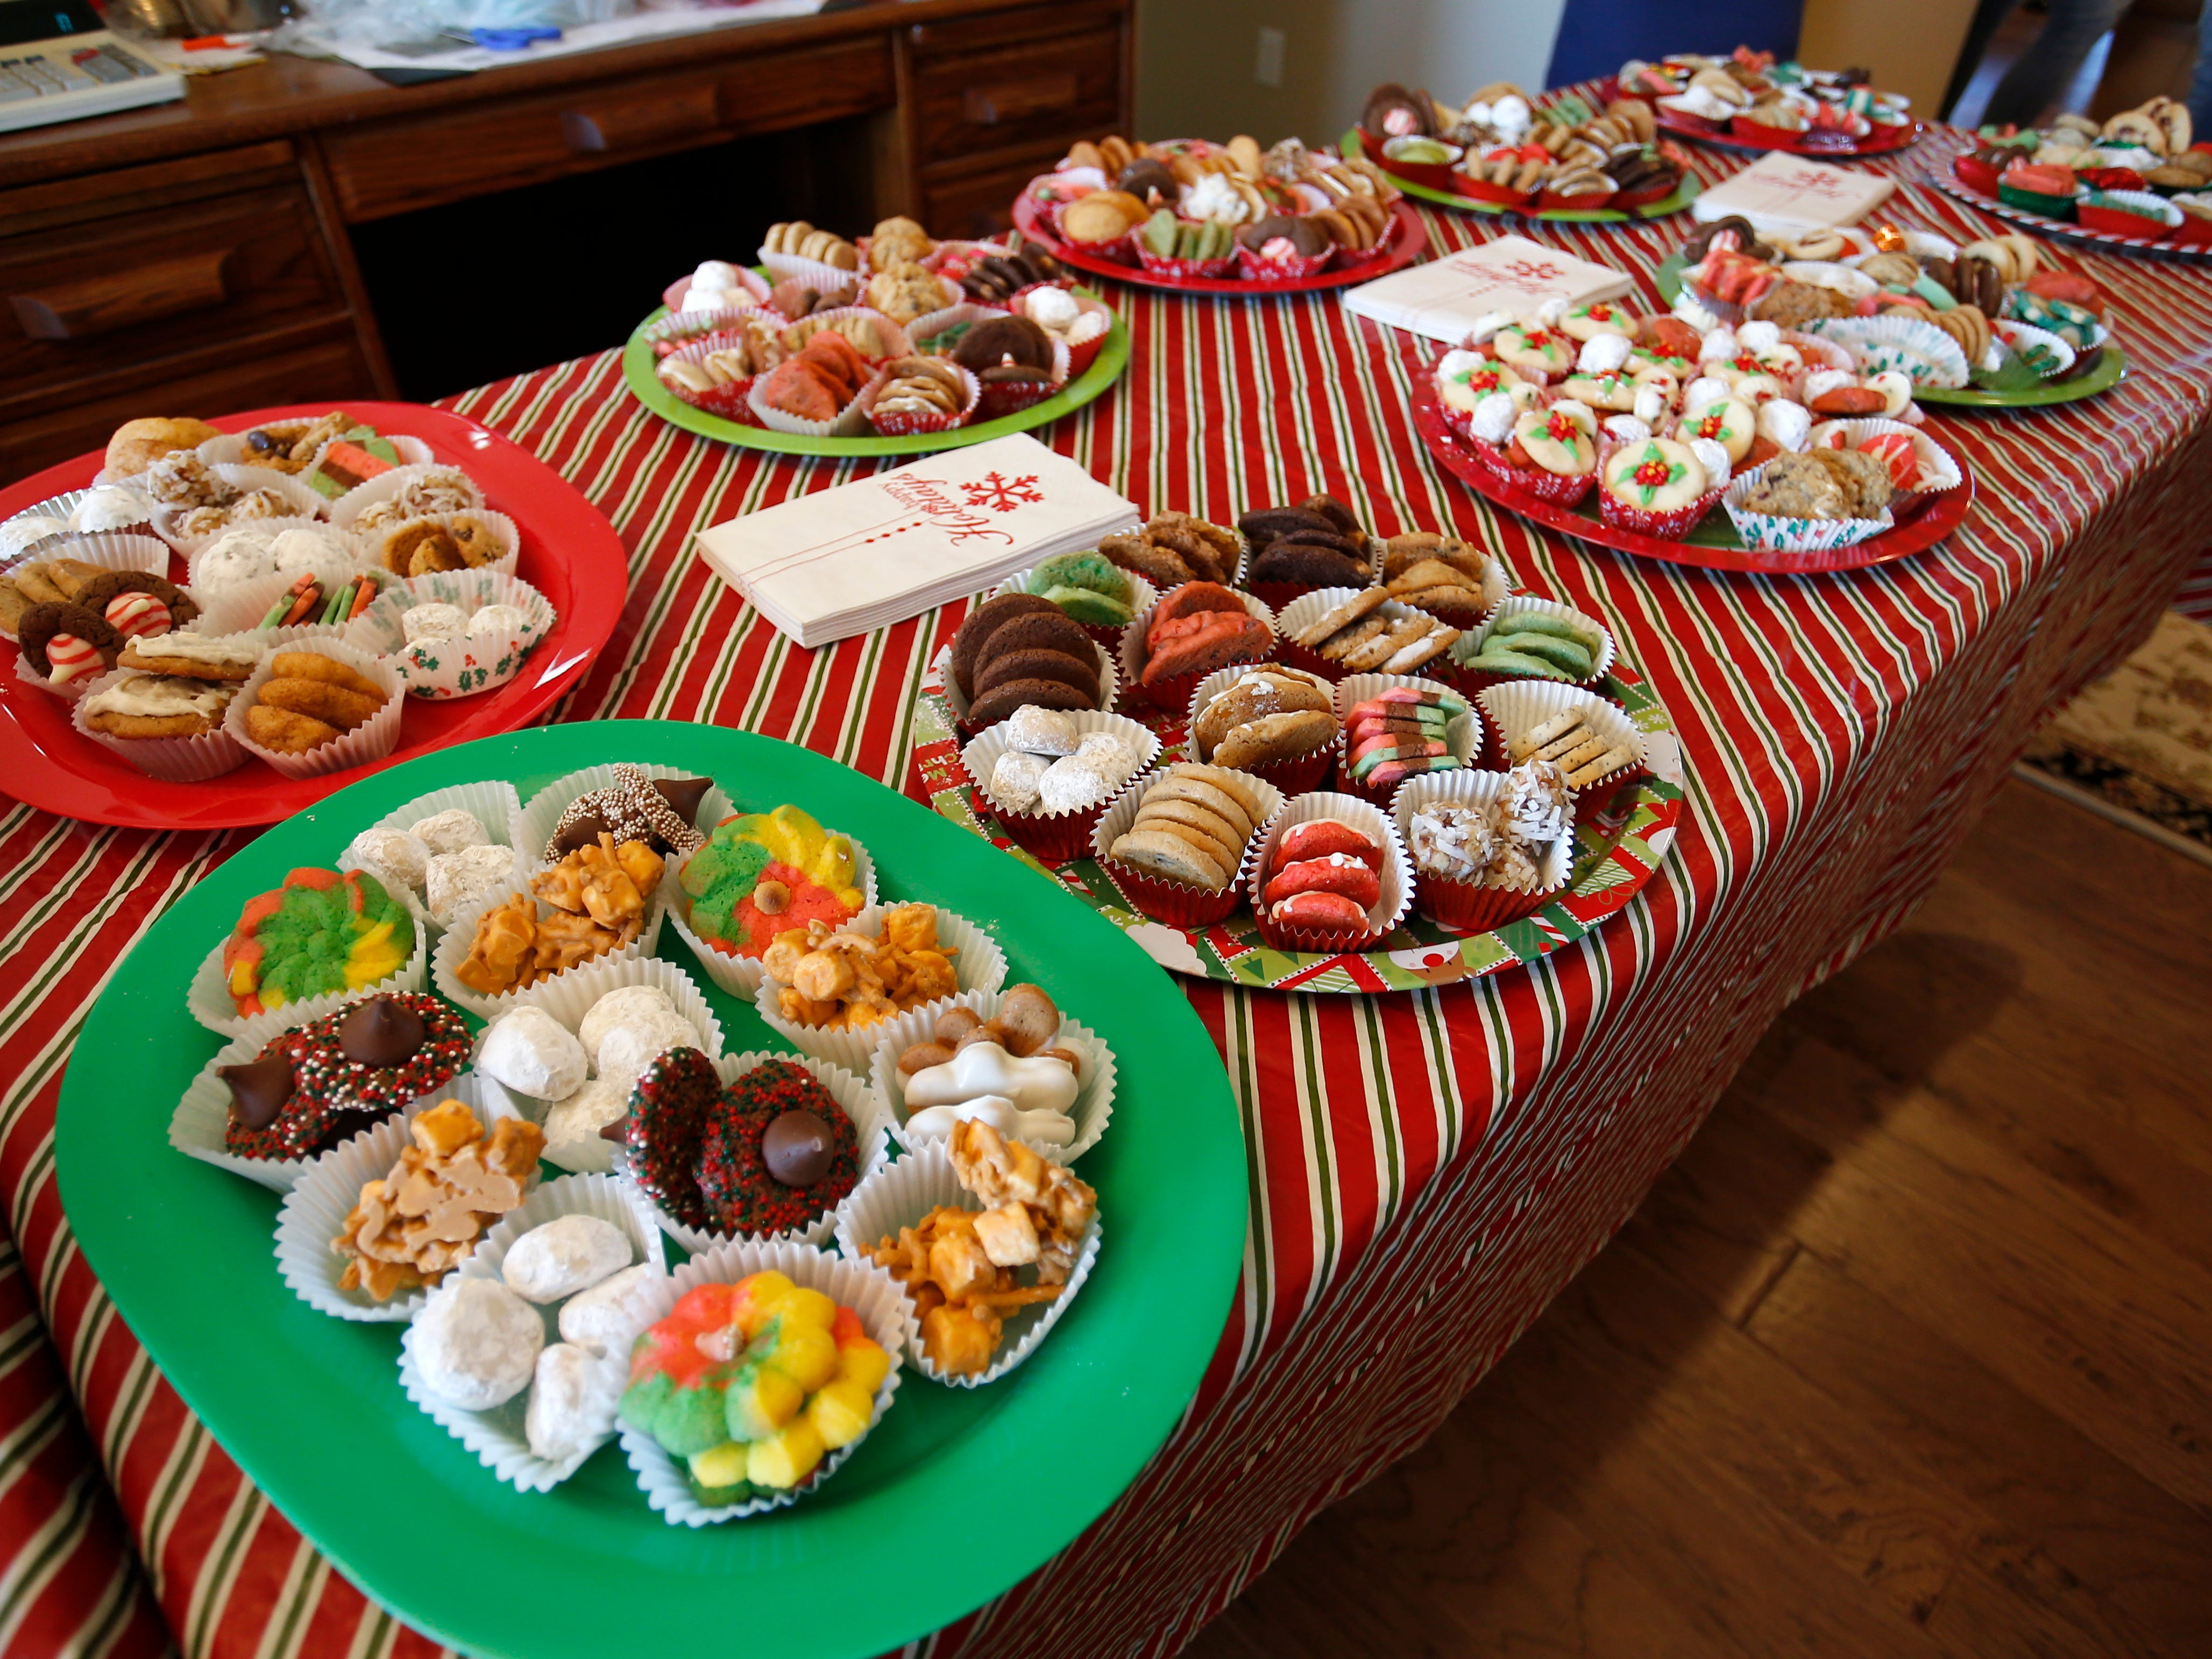 A table full of cookies at the Wotherspoon Christmas cookie extravaganza on Saturday, Dec. 15, 2018.